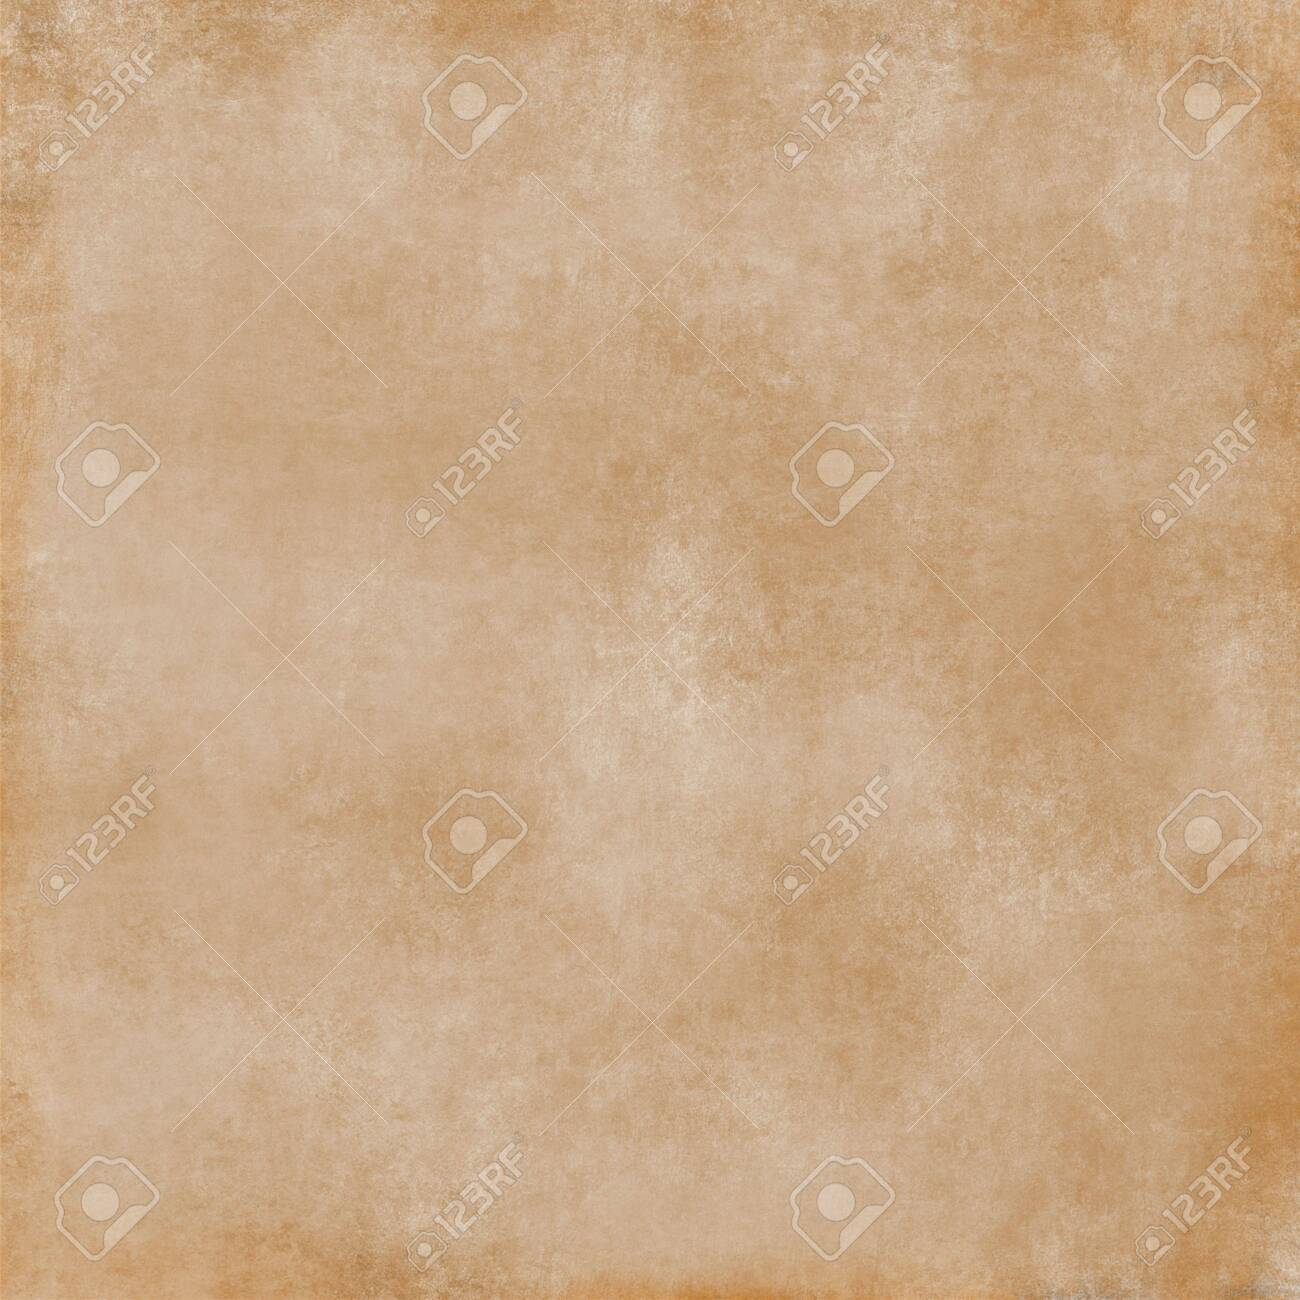 grunge abstract background - 140316284